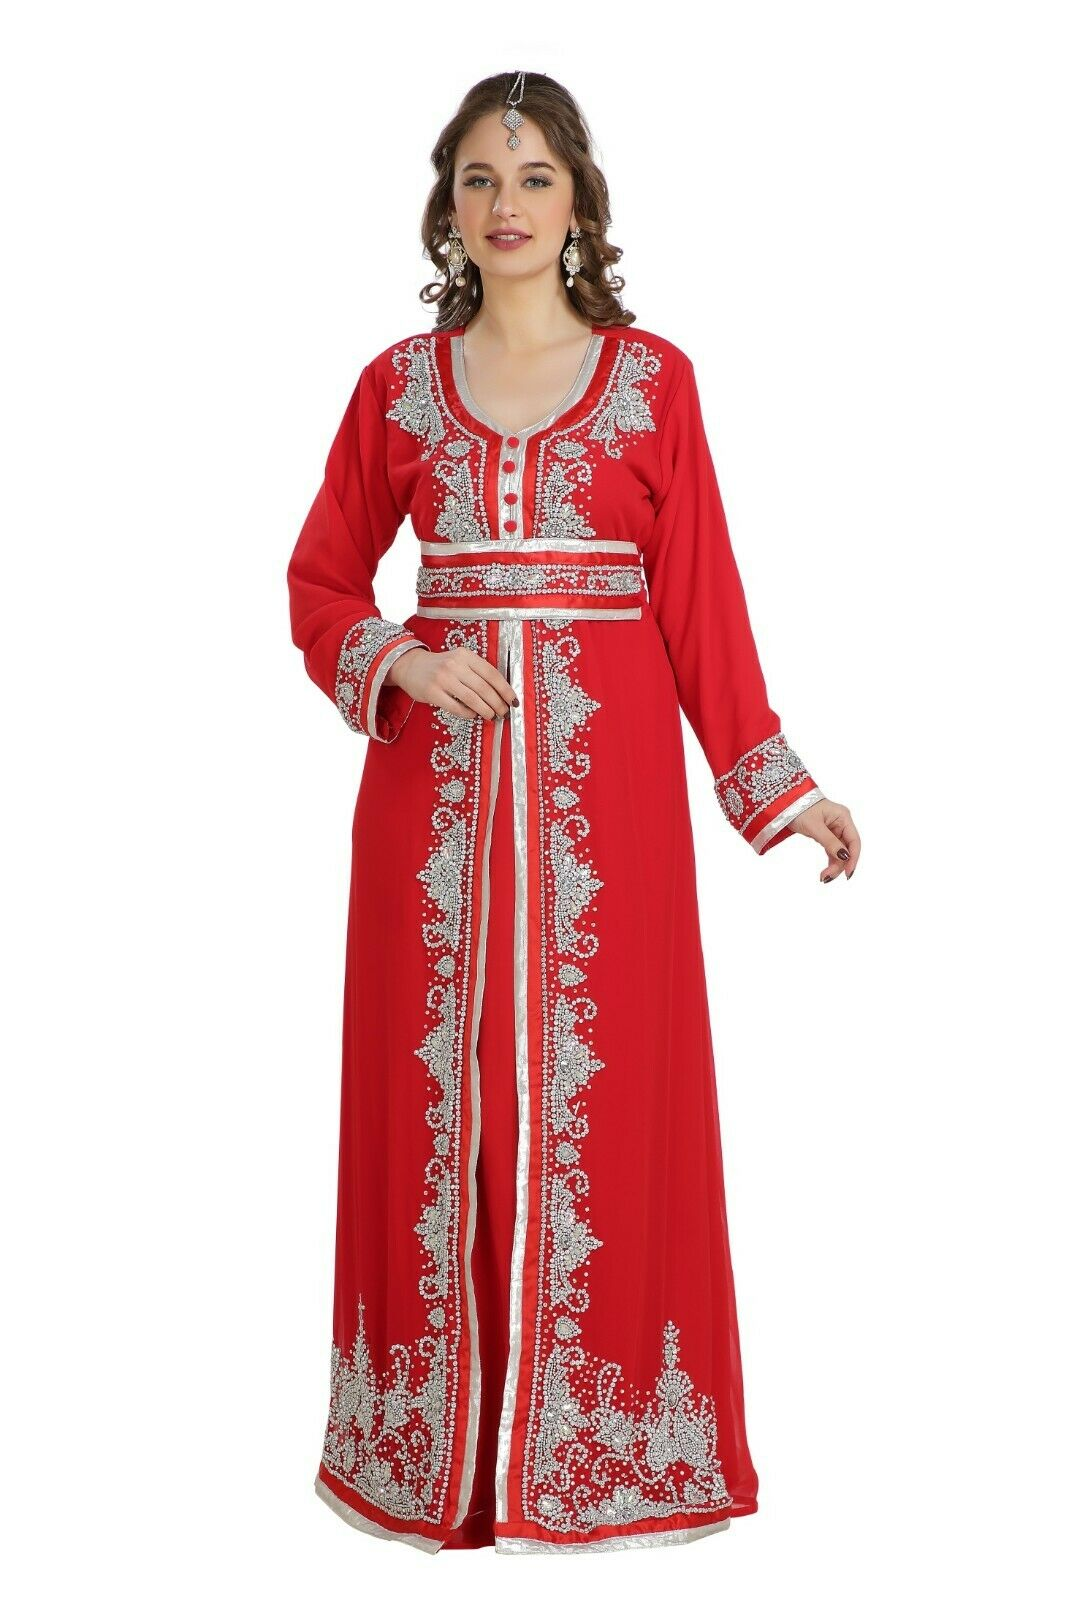 MOROCCAN PARTY DRESS TRADITIONAL KAFTAN FRENCH TAKCHITA LACE & EMBROIDERY 7827